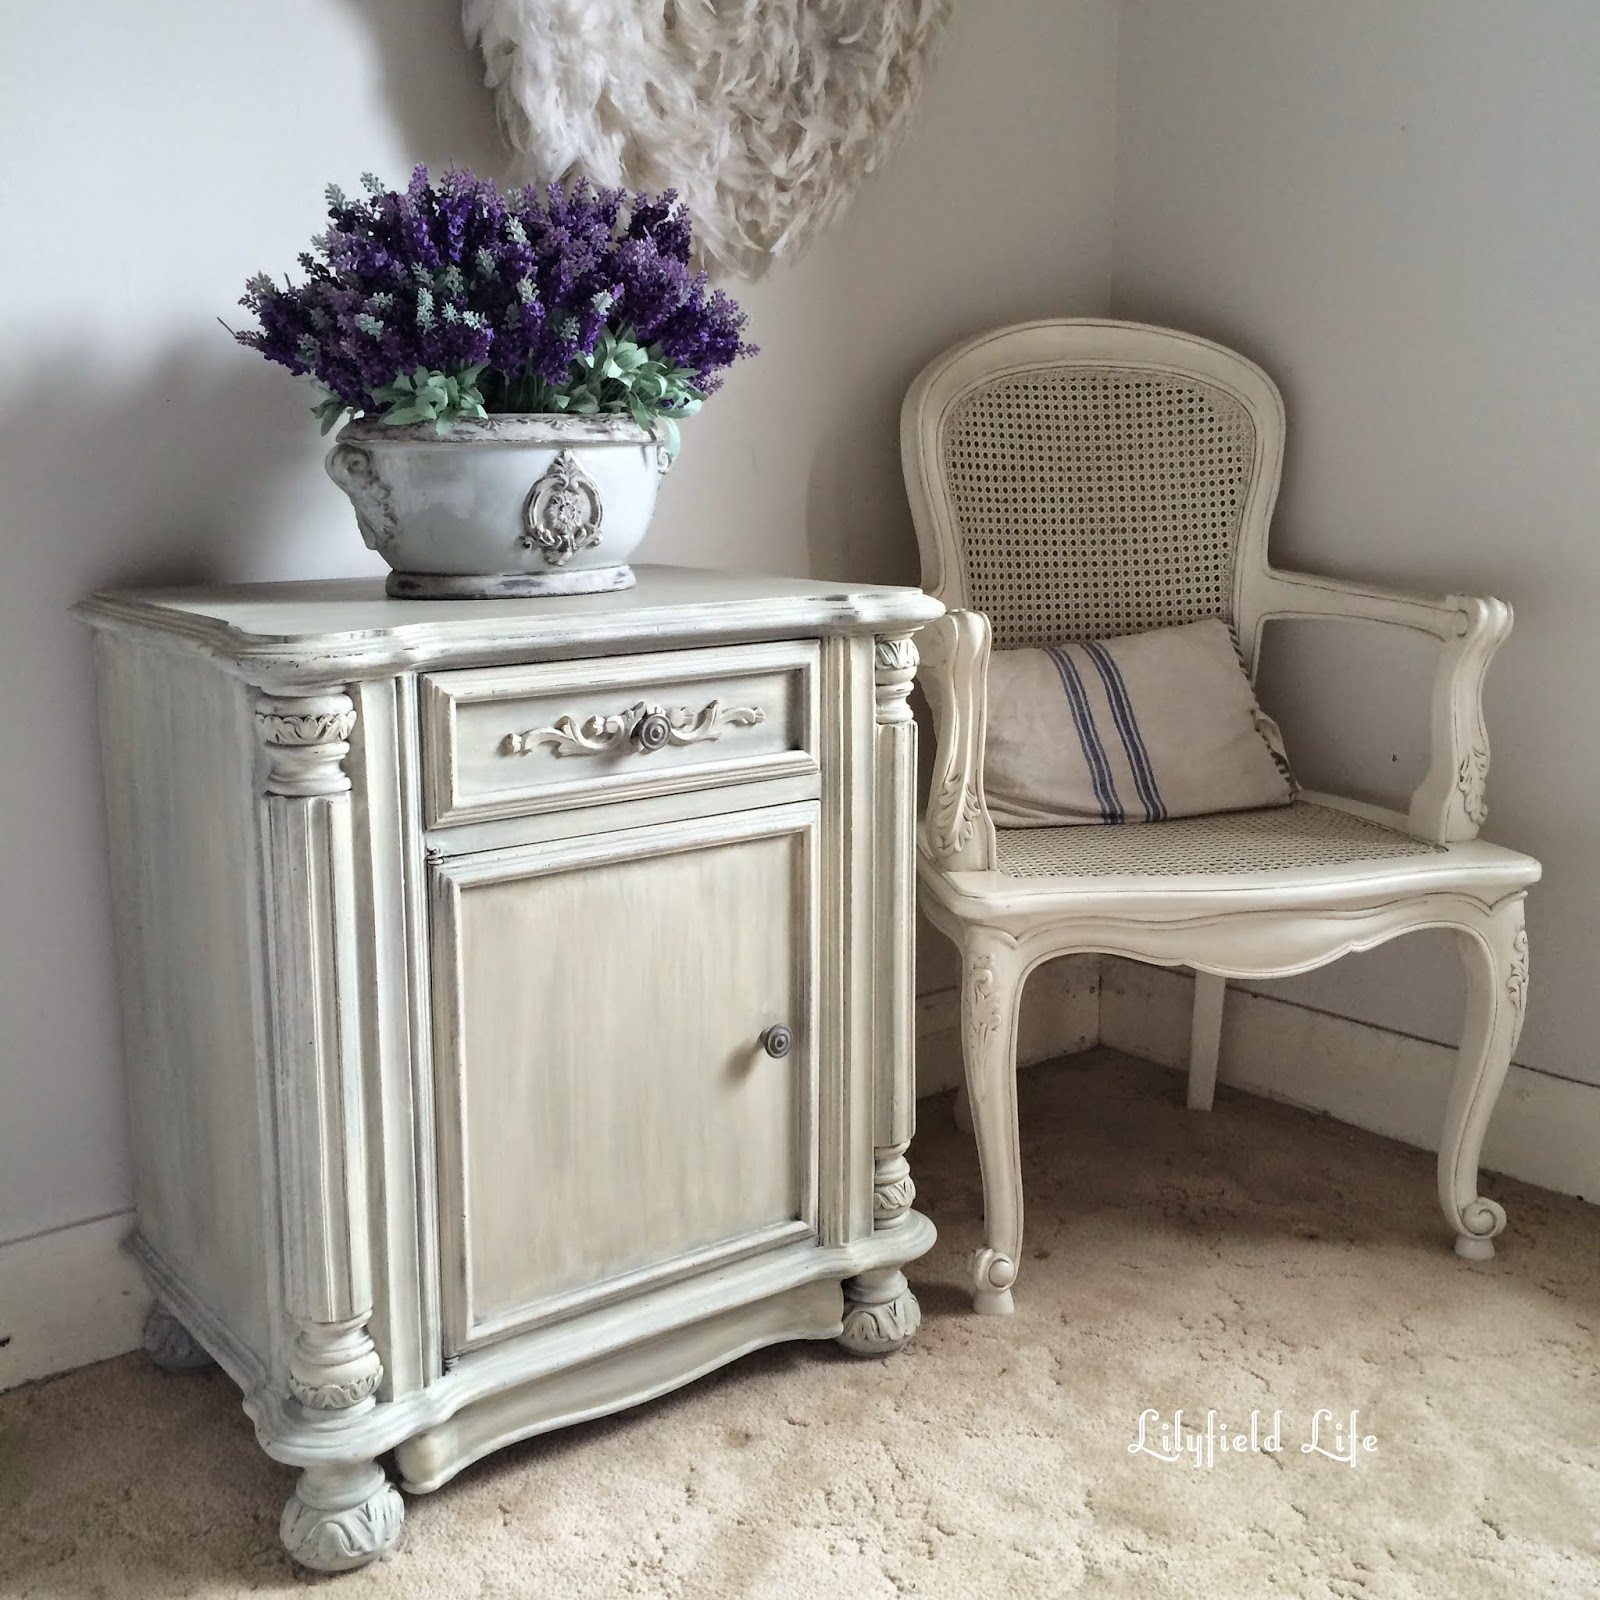 French style dry brushed and washed cupboard ASCP Lilyfield life